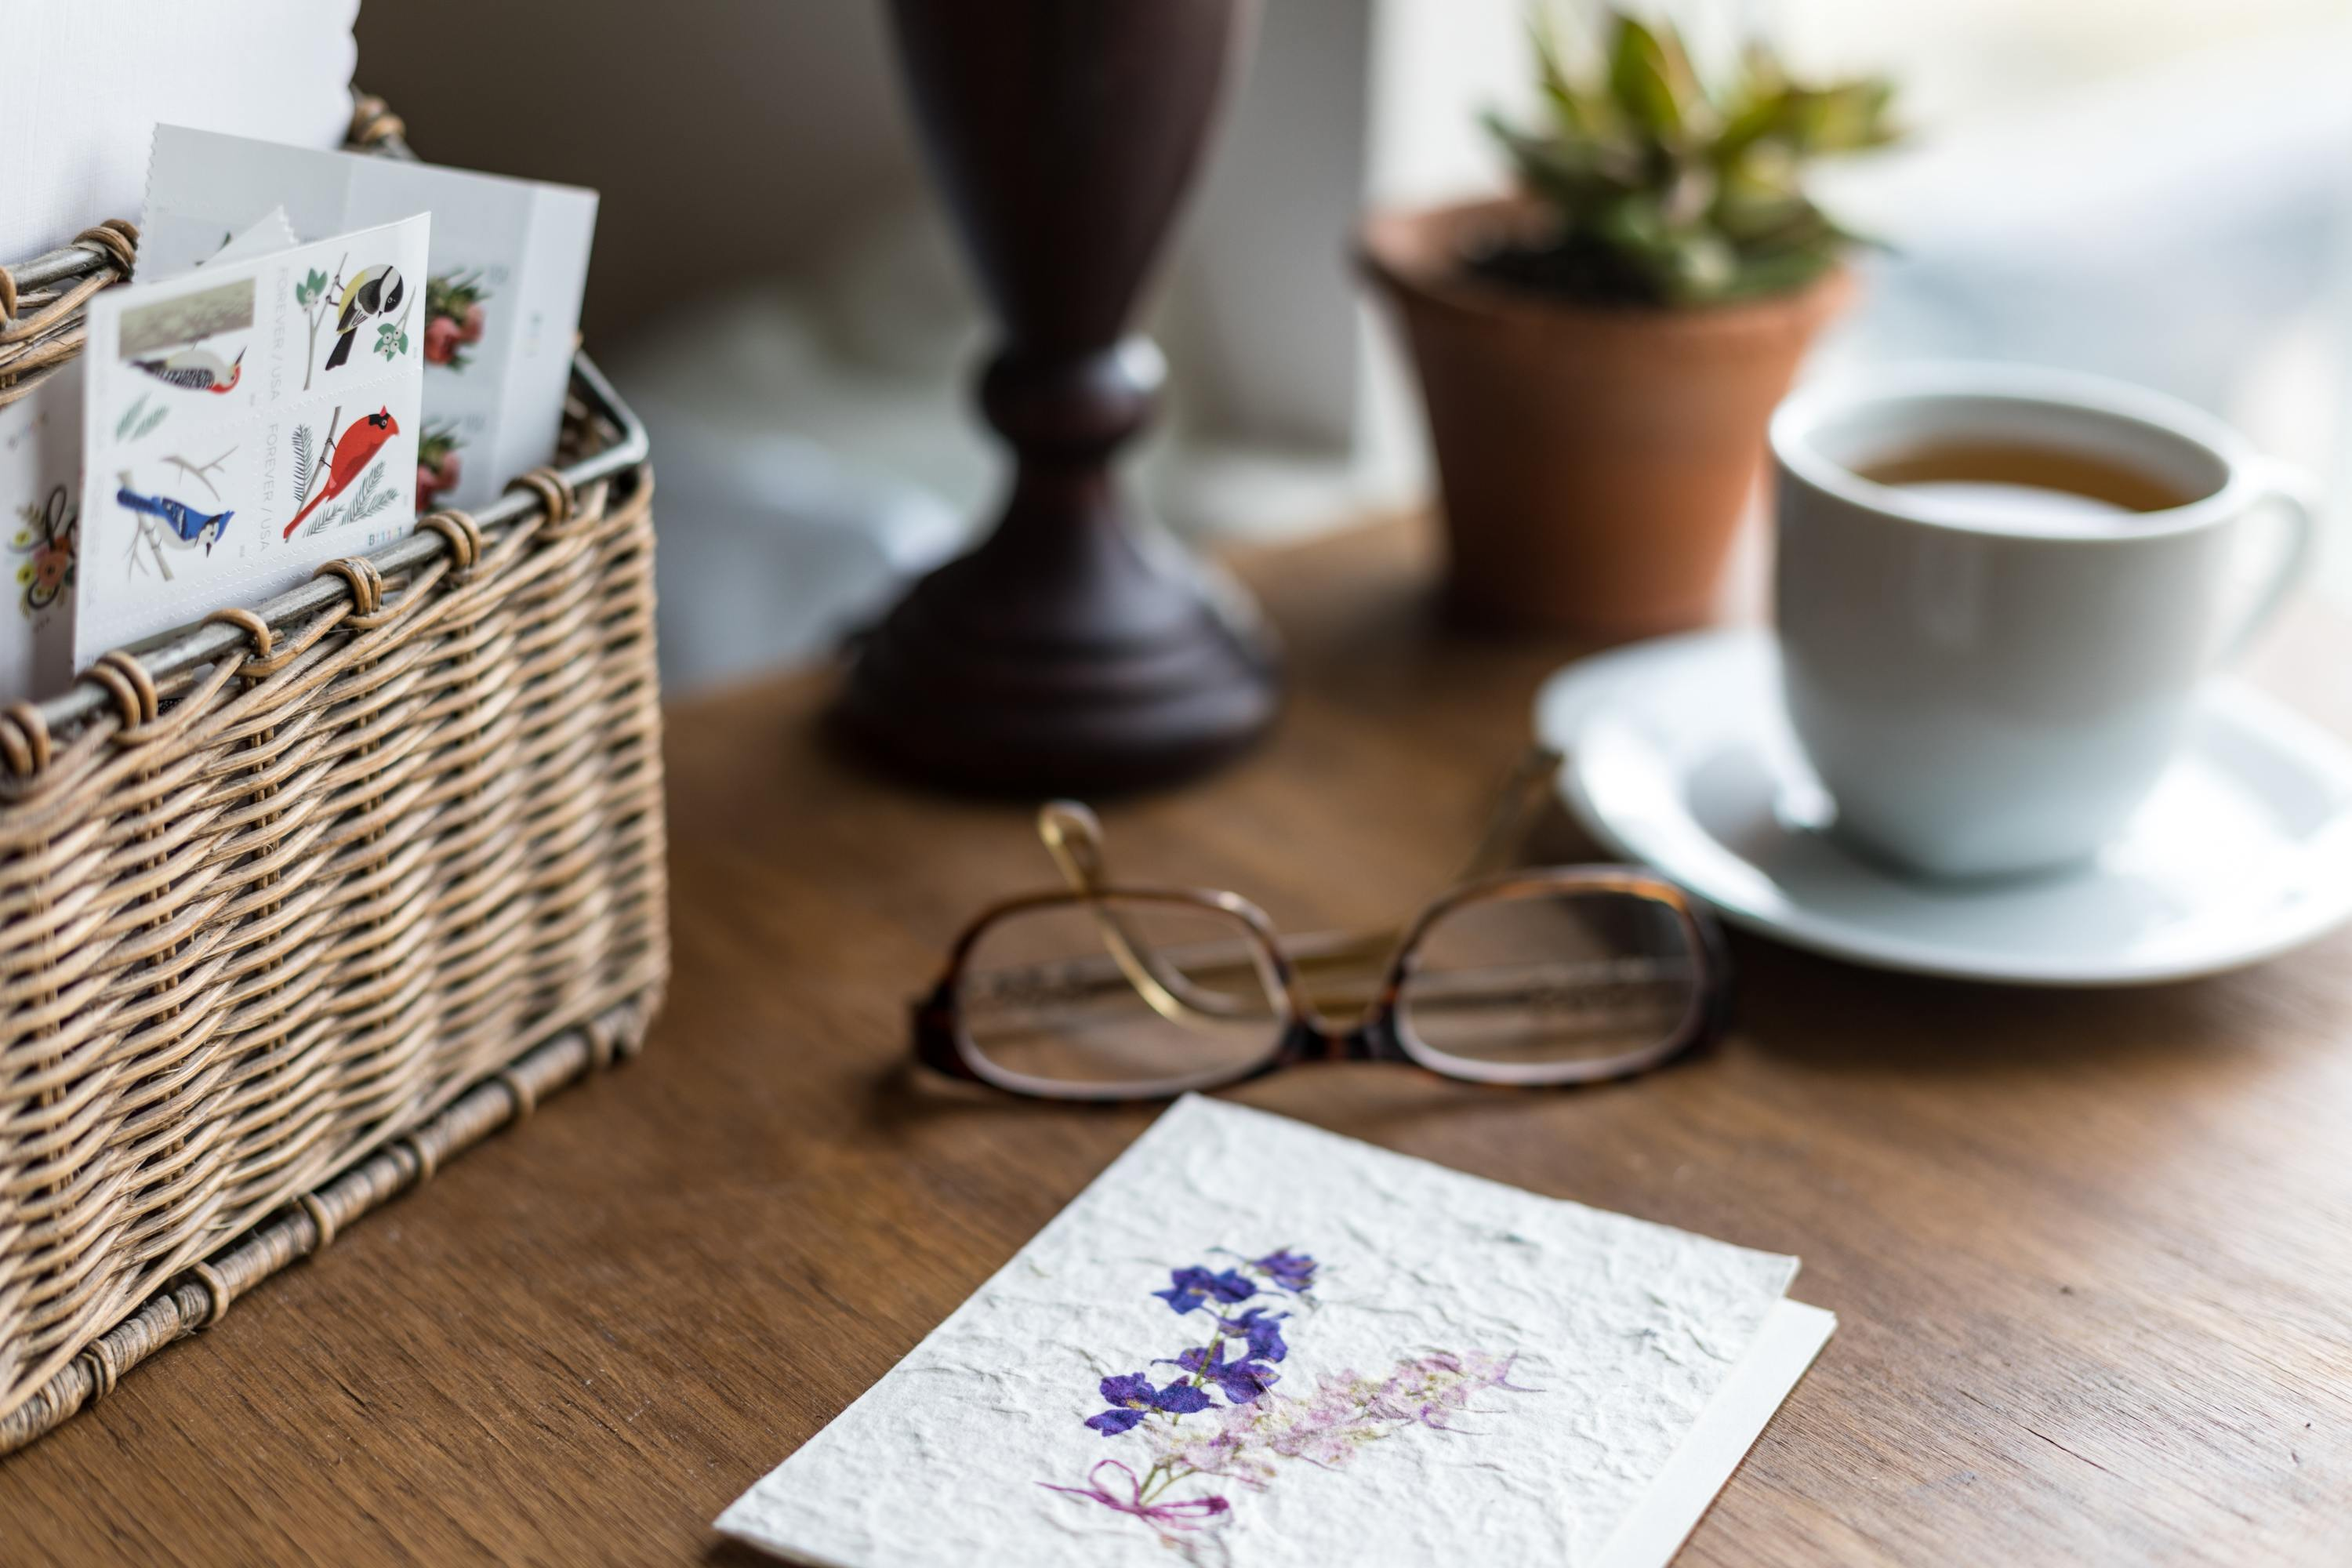 Letter on table next to glasses and mug